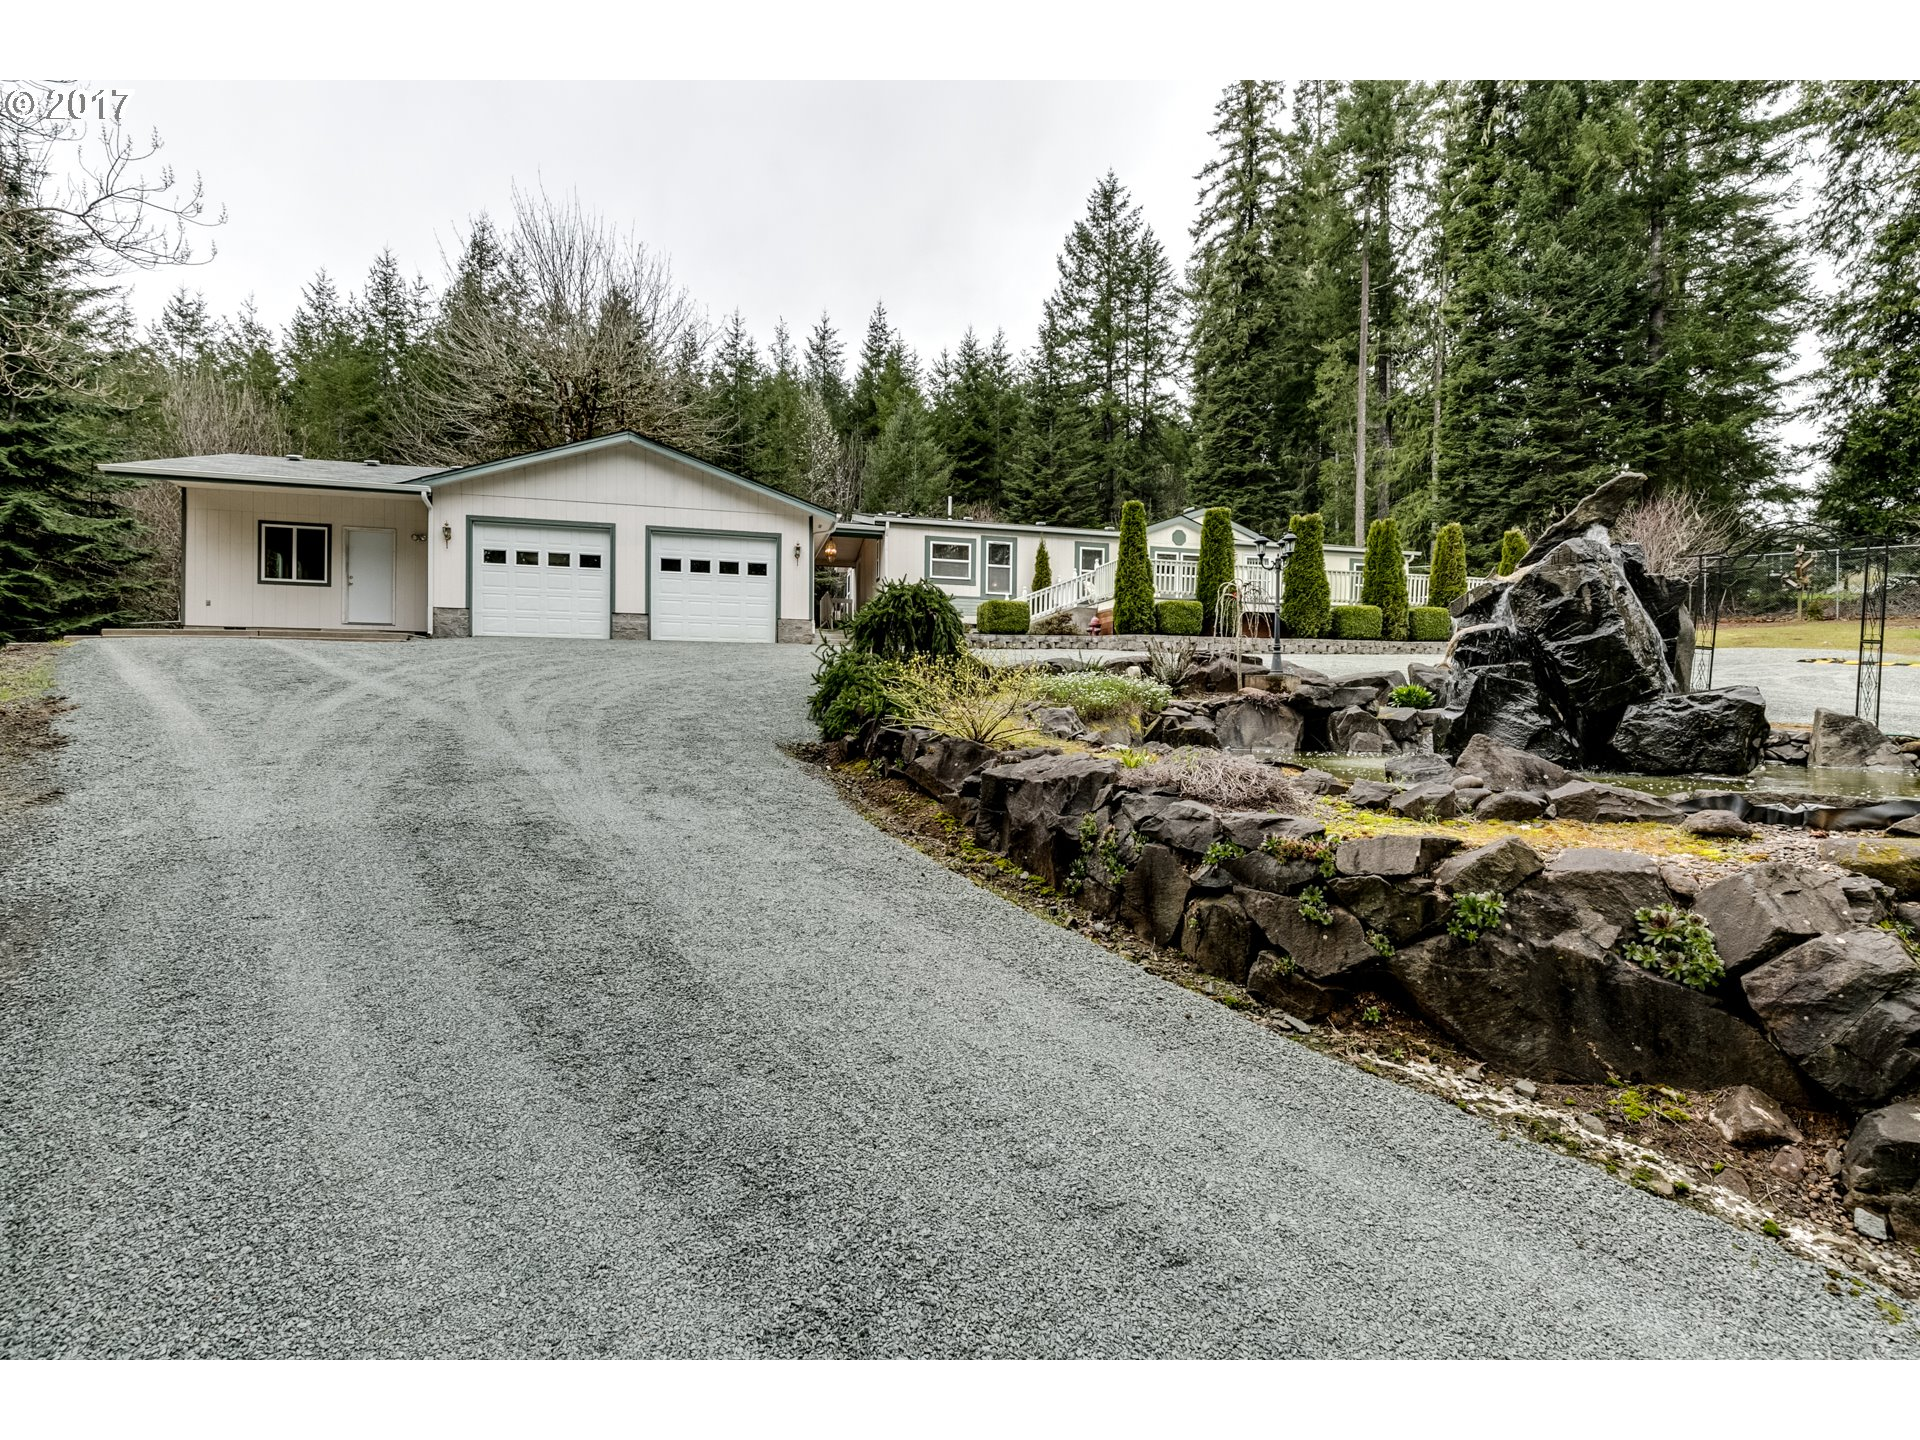 76358 LONDON RD land, Cottage Grove, OR 97424